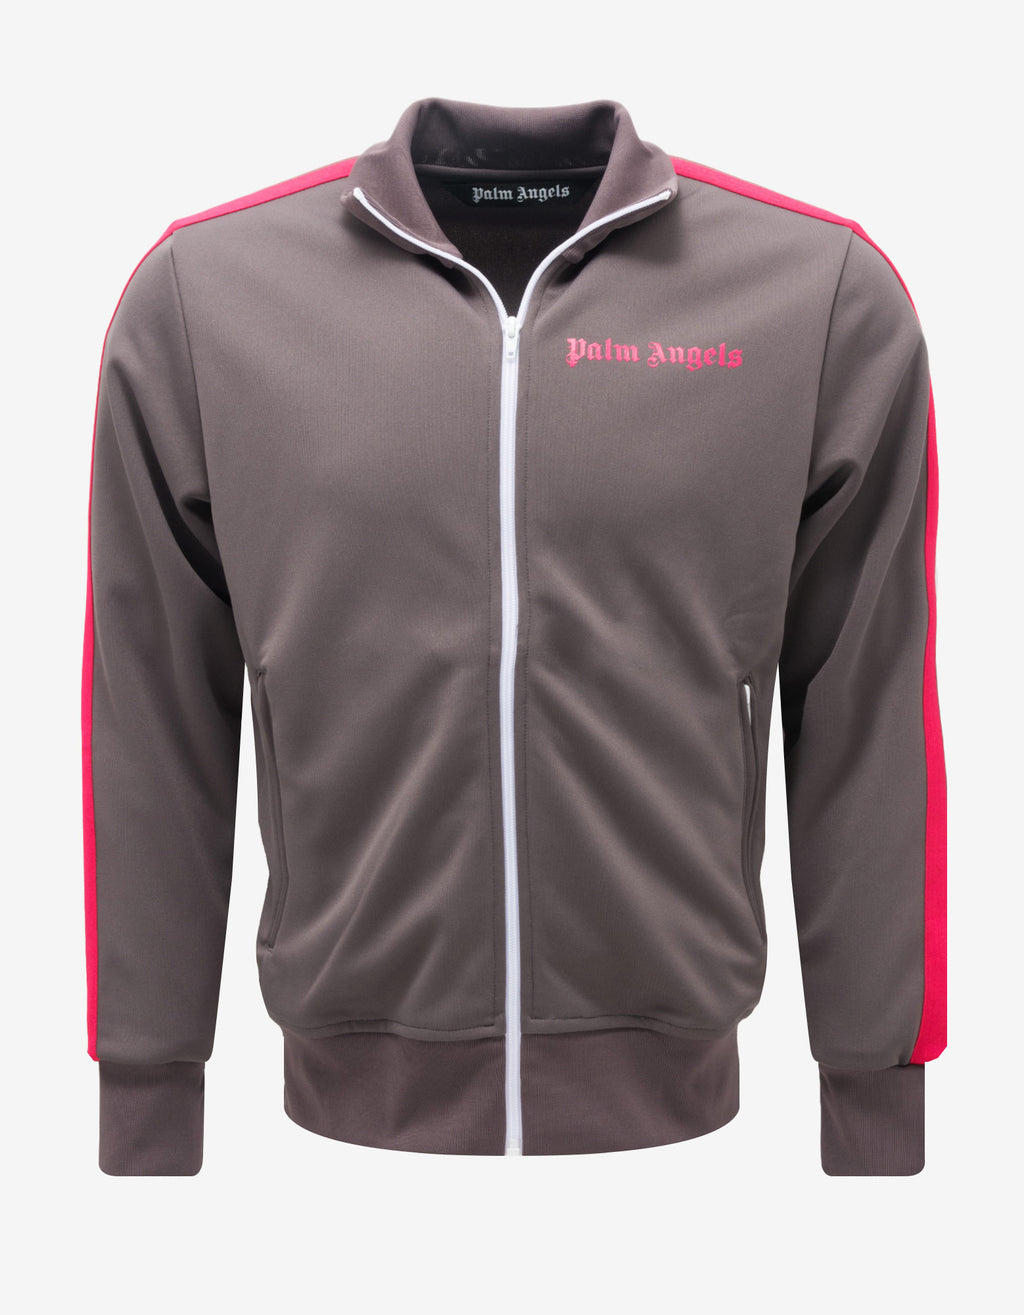 Grey Track Jacket with Magenta Stripes